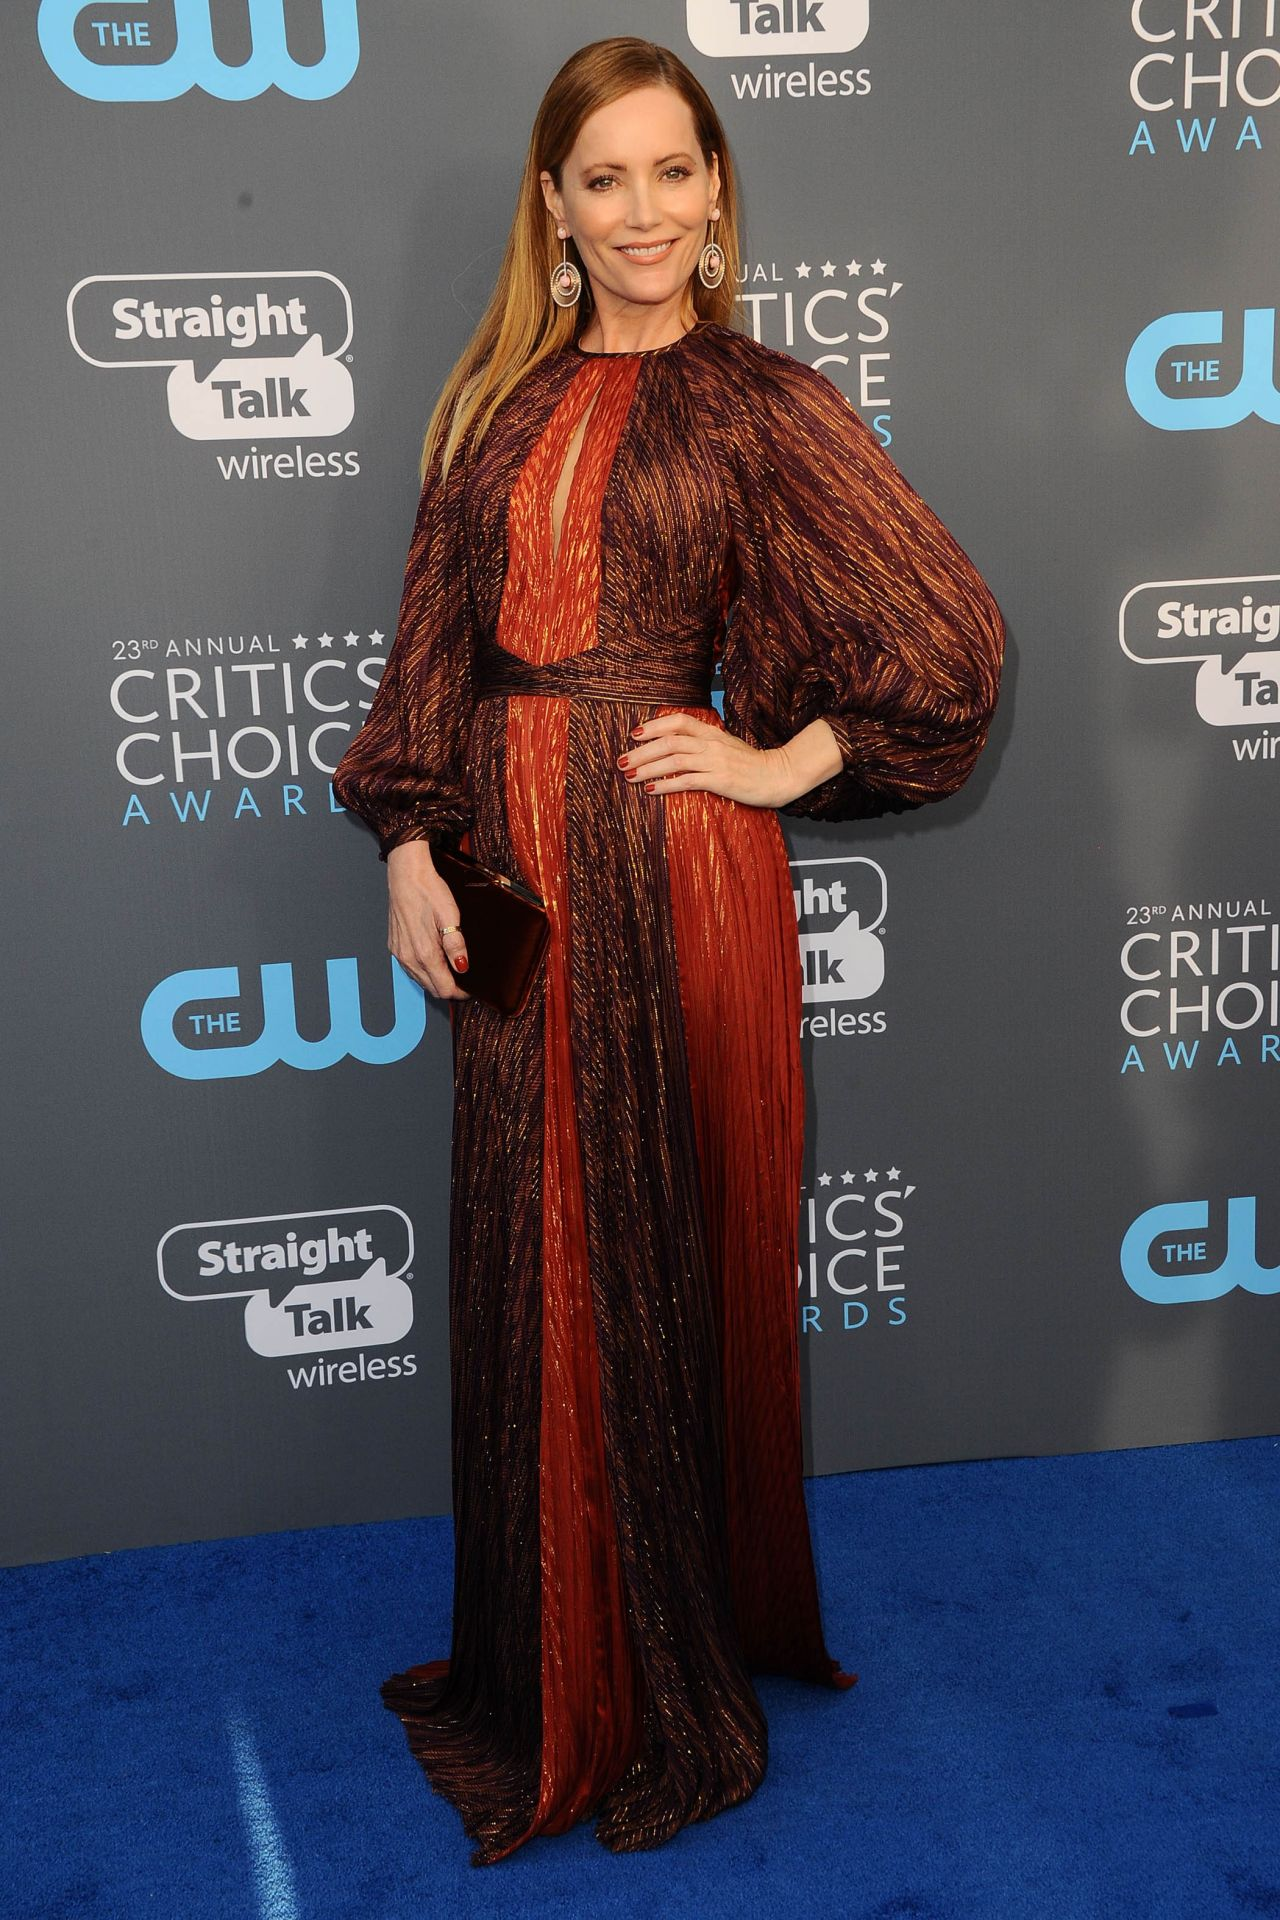 http://celebmafia.com/wp-content/uploads/2018/01/leslie-mann-2018-critics-choice-awards-5.jpg